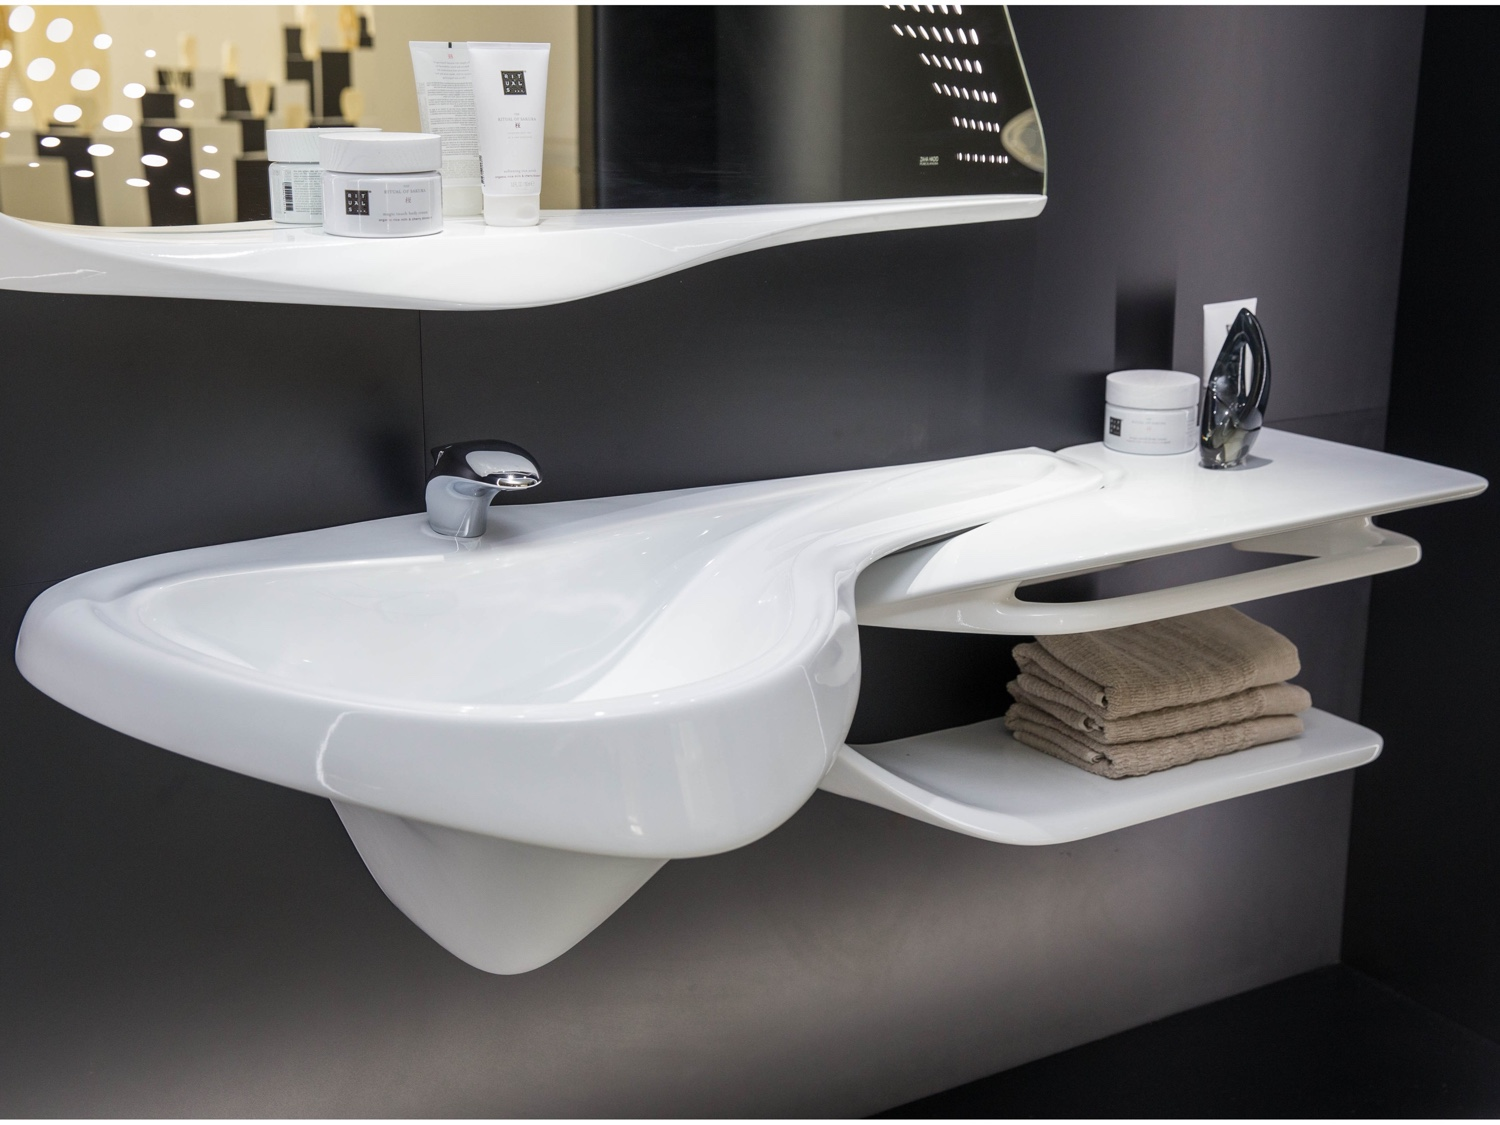 View in gallery ... & Bathrooms of the Future: The Role of Design and Innovation